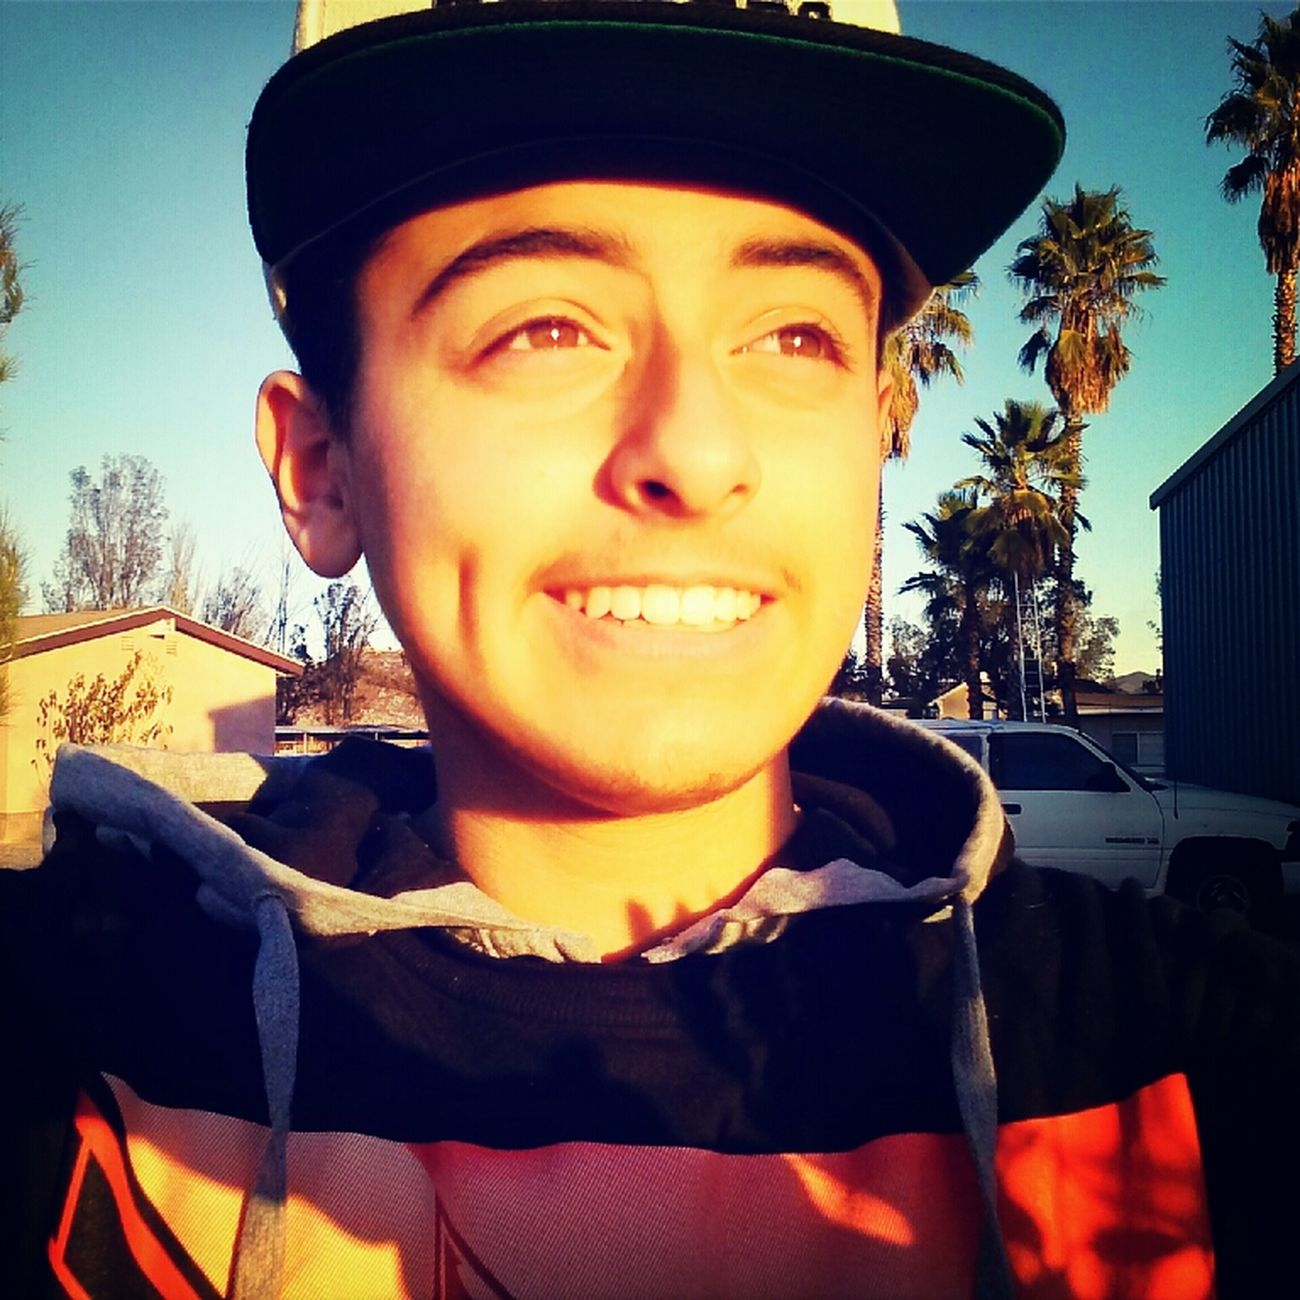 my eyes/dimples tho(: